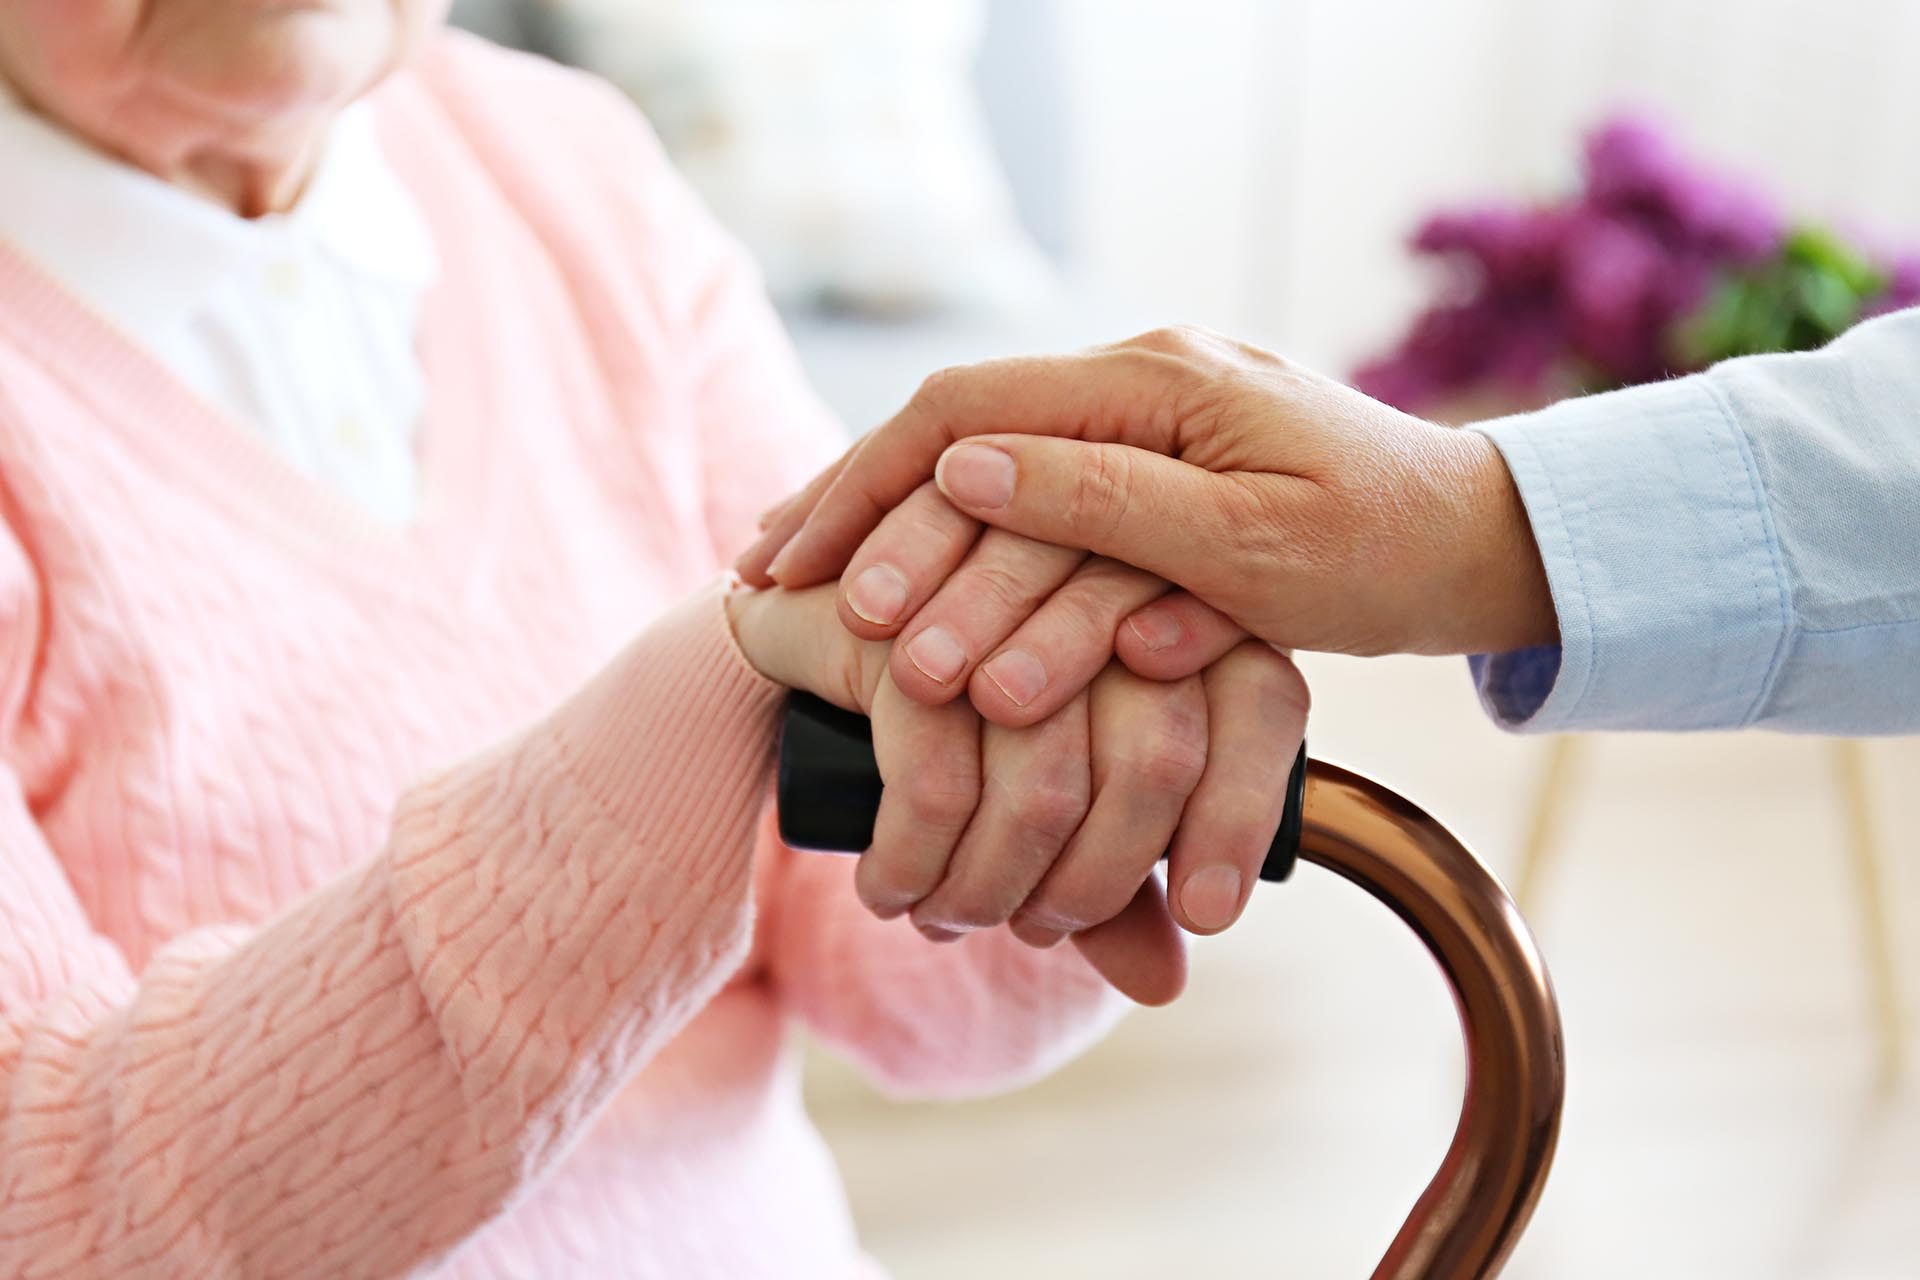 Know Your Rights as an Unpaid Caregiver